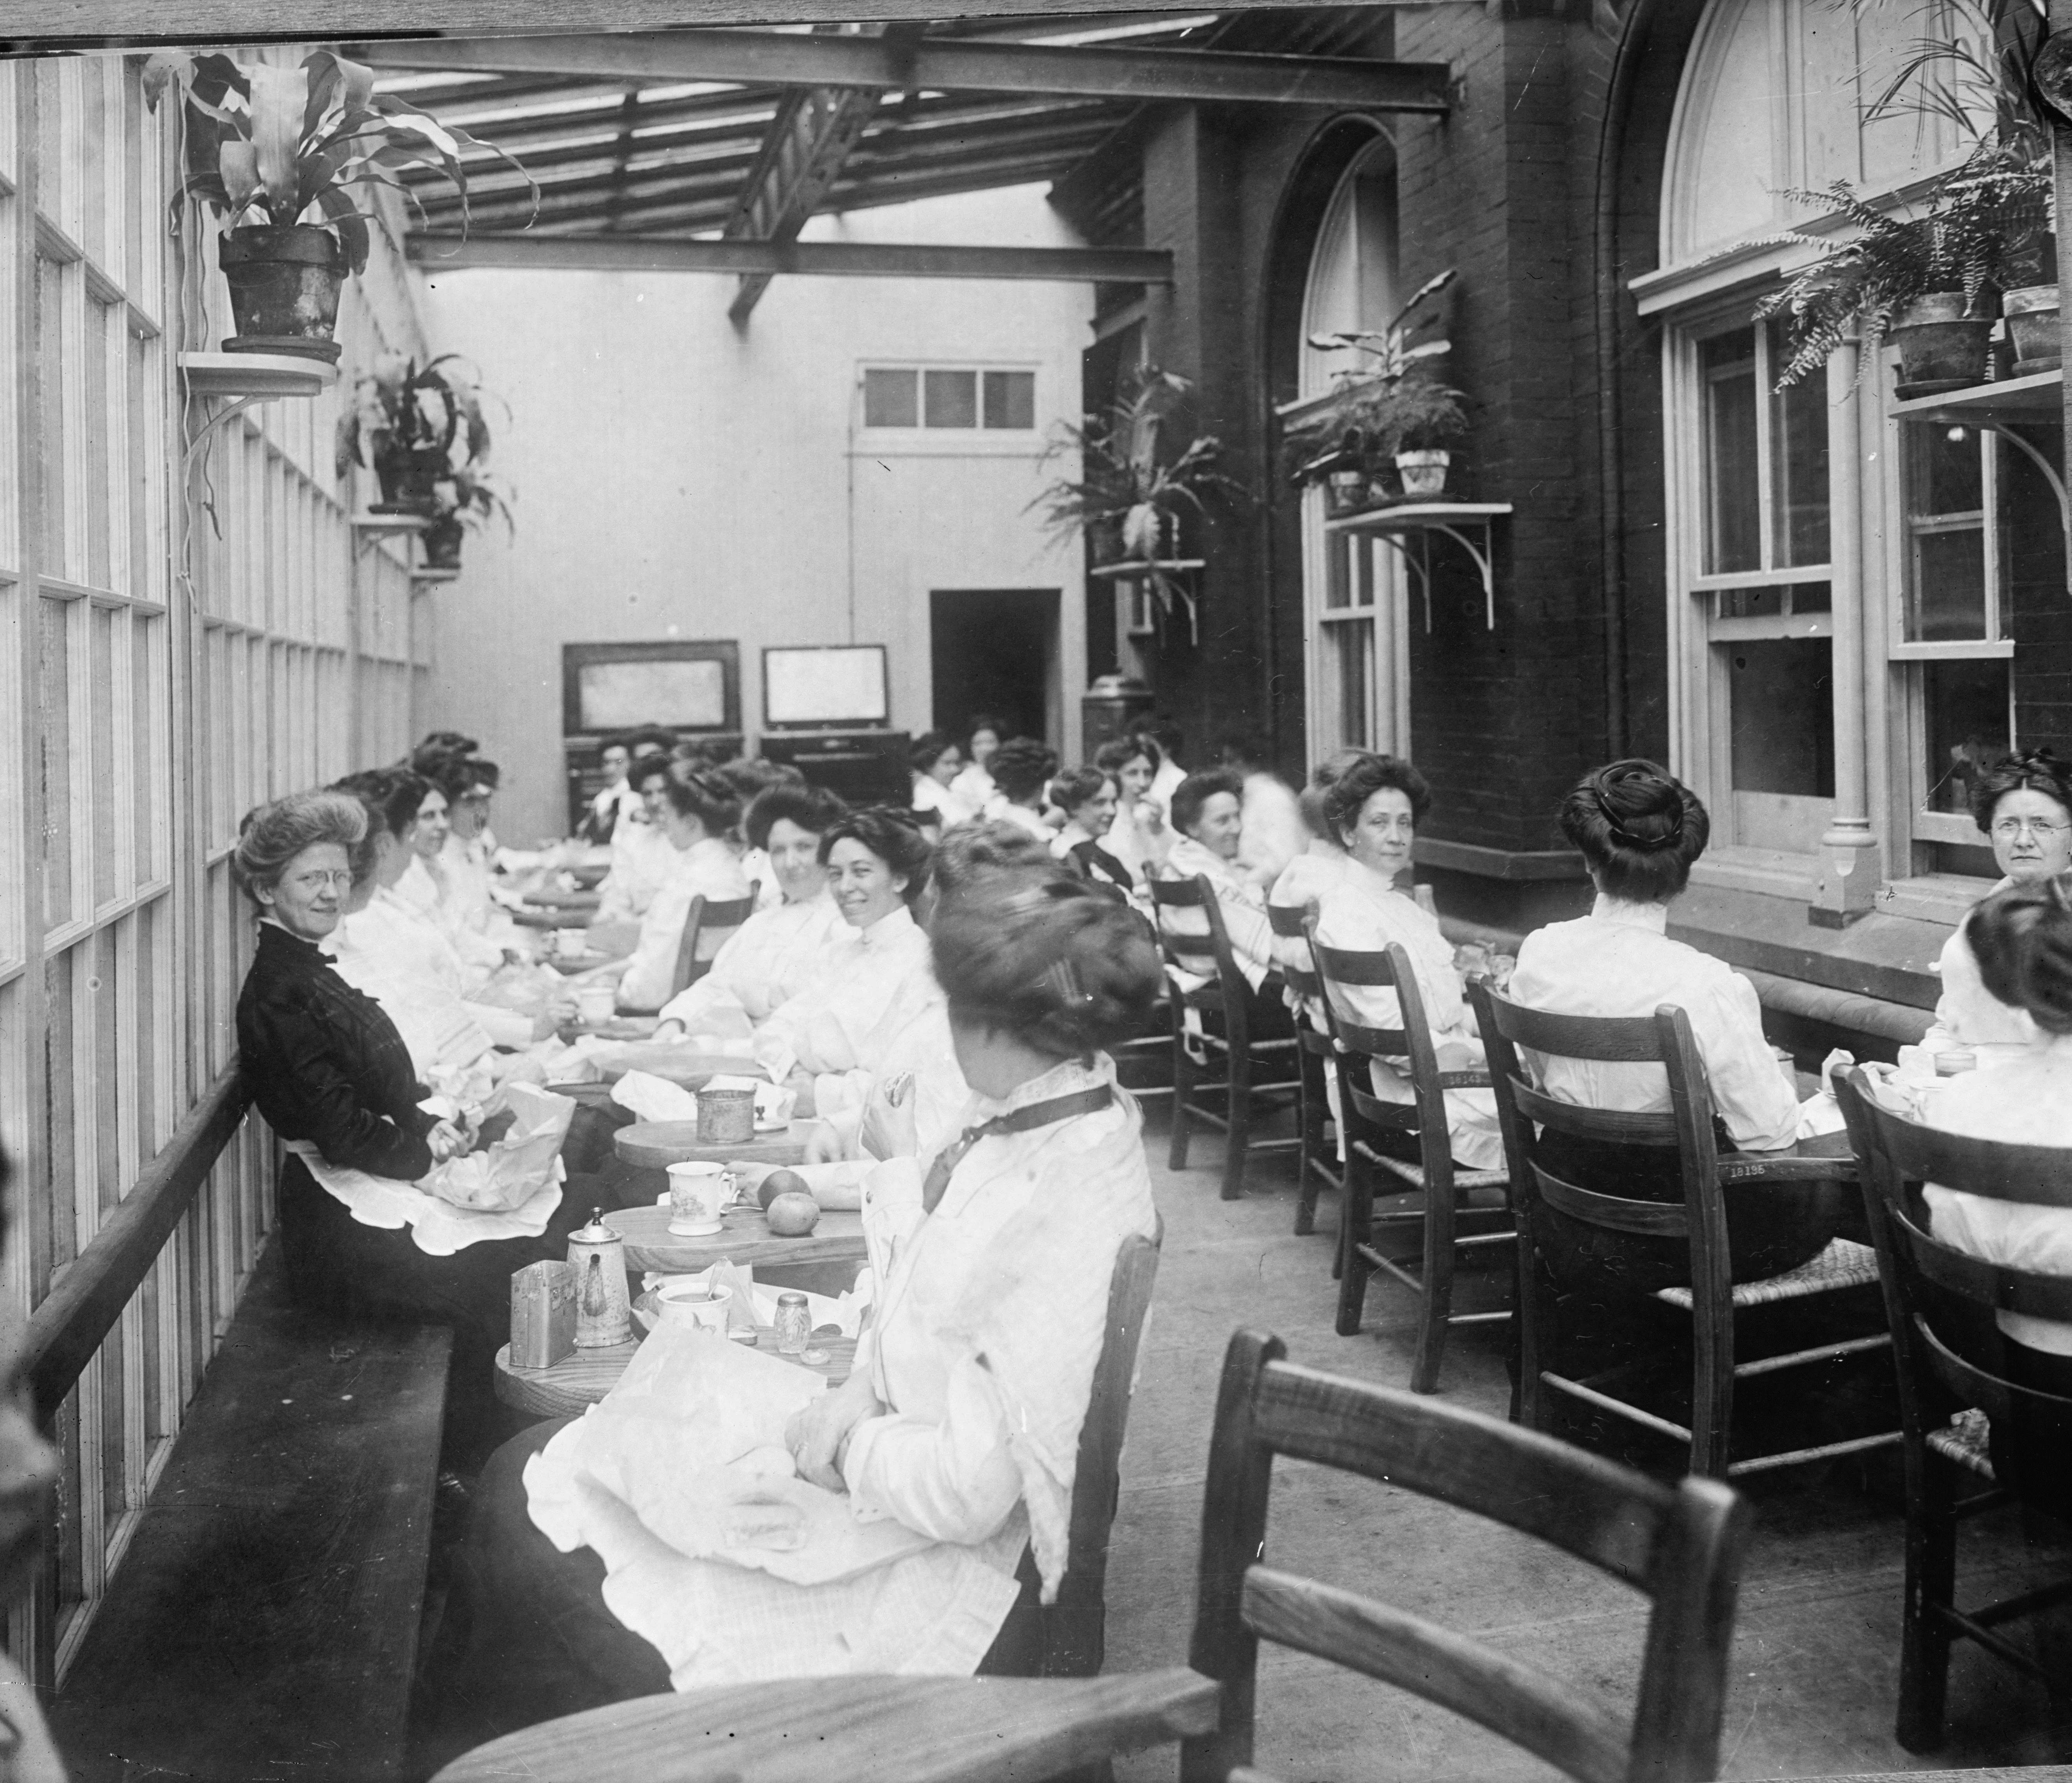 Bureau of Engraving & Printing Dining Hall, c. 1900.